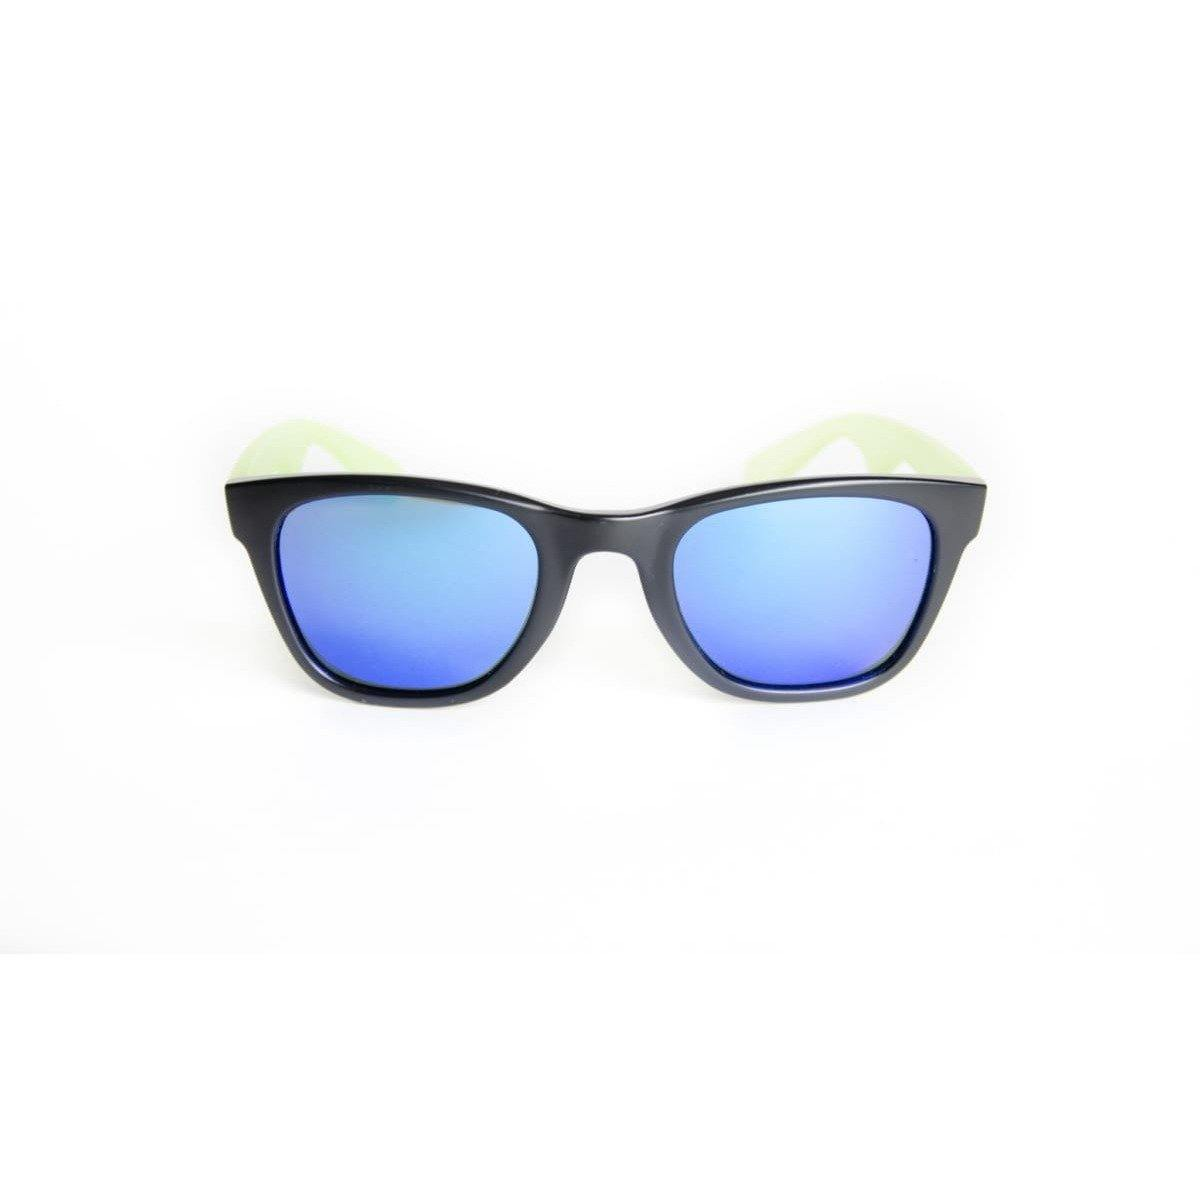 "Sports Sunglasses Designer Sunglasses Model ""Duck Sauce"" Green By: The Ever Collection"